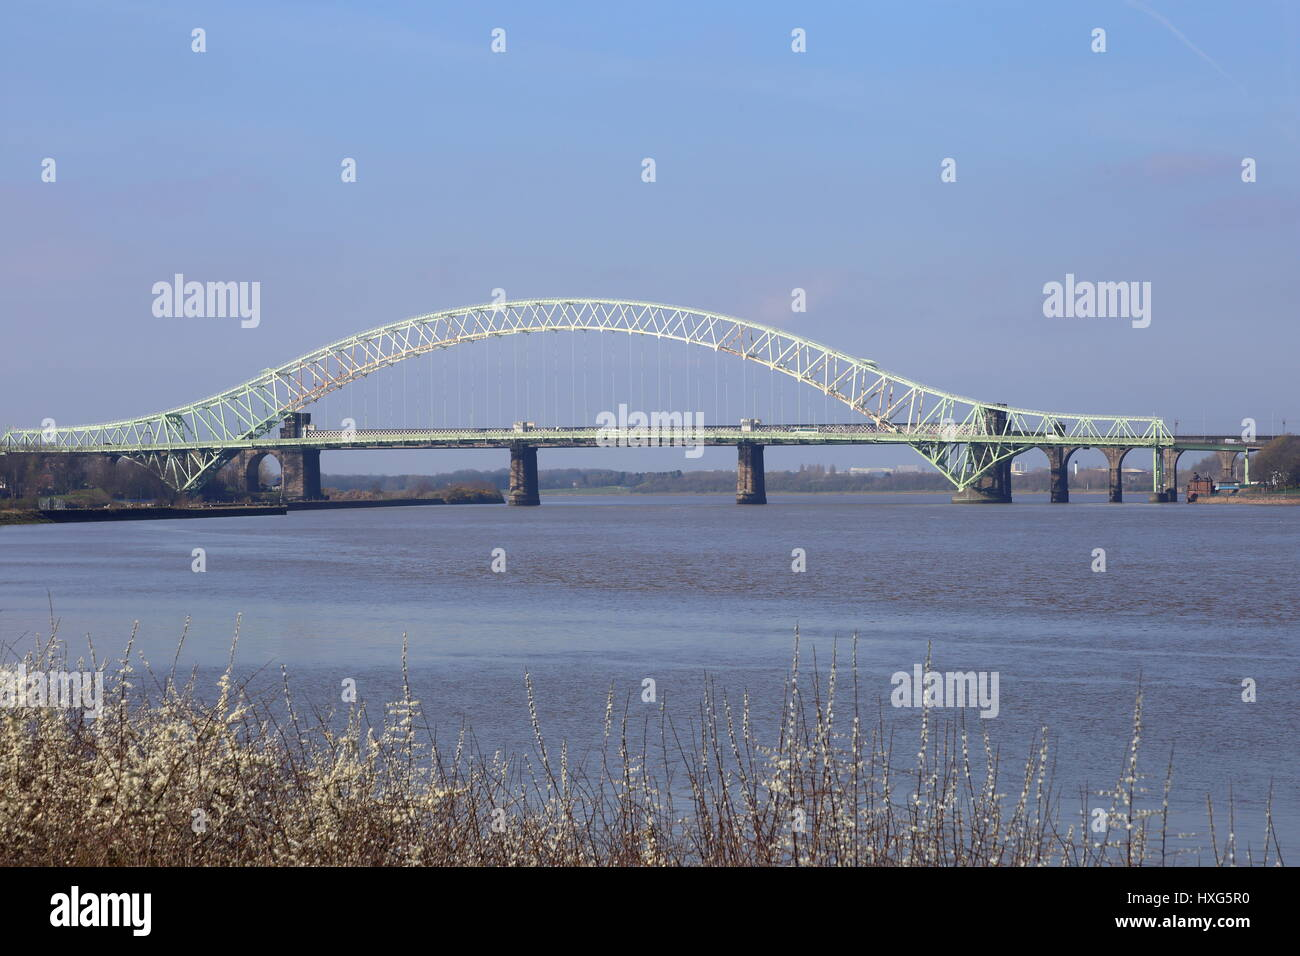 The Silver Jubilee Bridge at Runcorn crossing the Manchester Ship Canal and the River Mersey. Rail bridge of stone - Stock Image